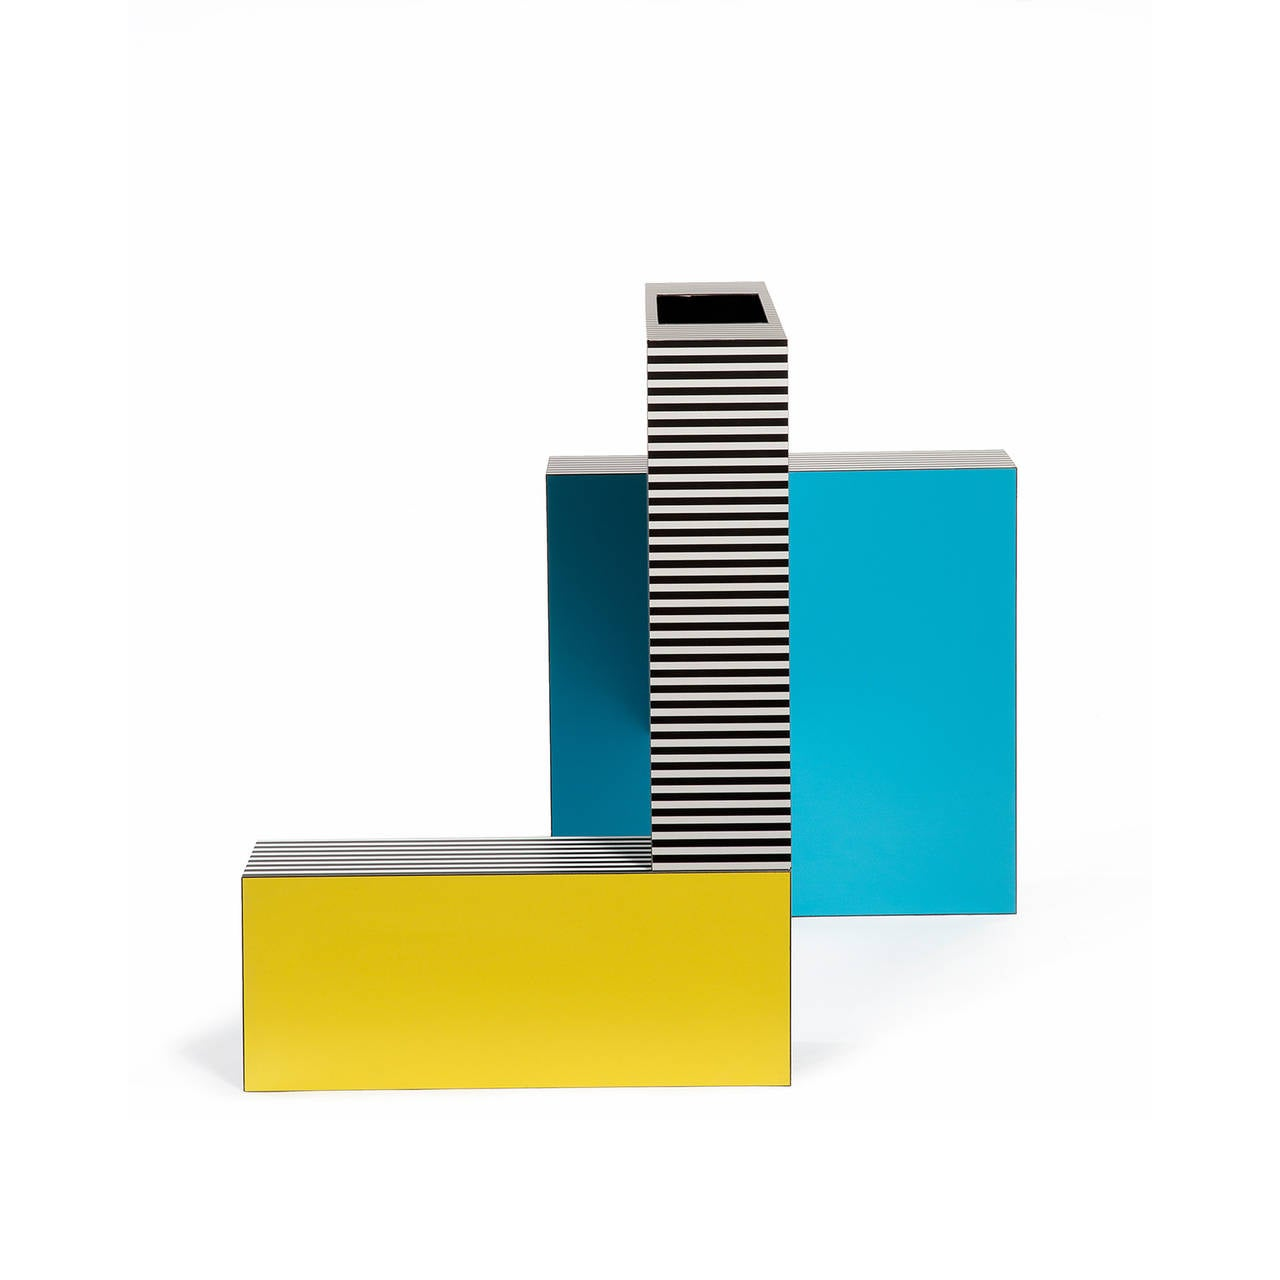 Laminate Memphis Inspired Vessel from the Neo Laminati Collection For Sale